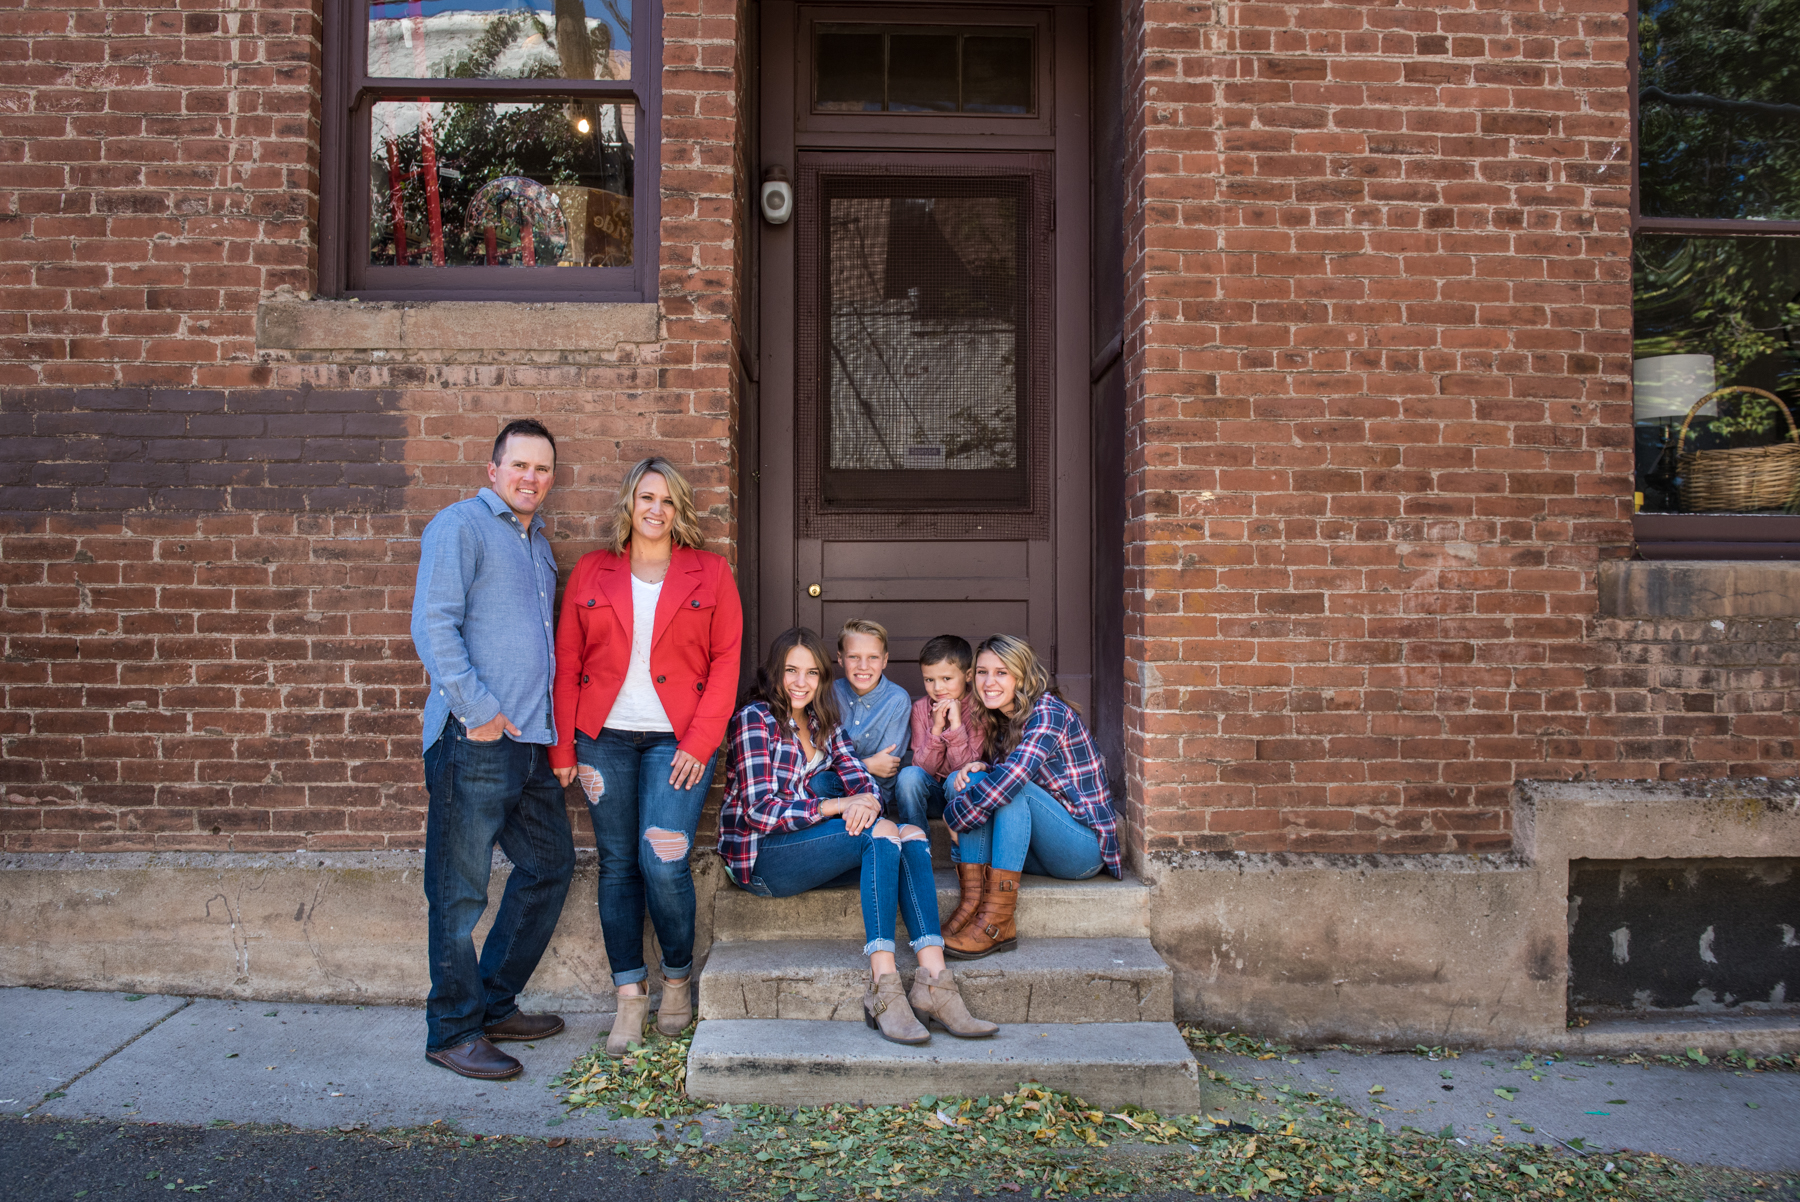 029-keck-downtown-flagstaff-family-photos-2017ther2studio